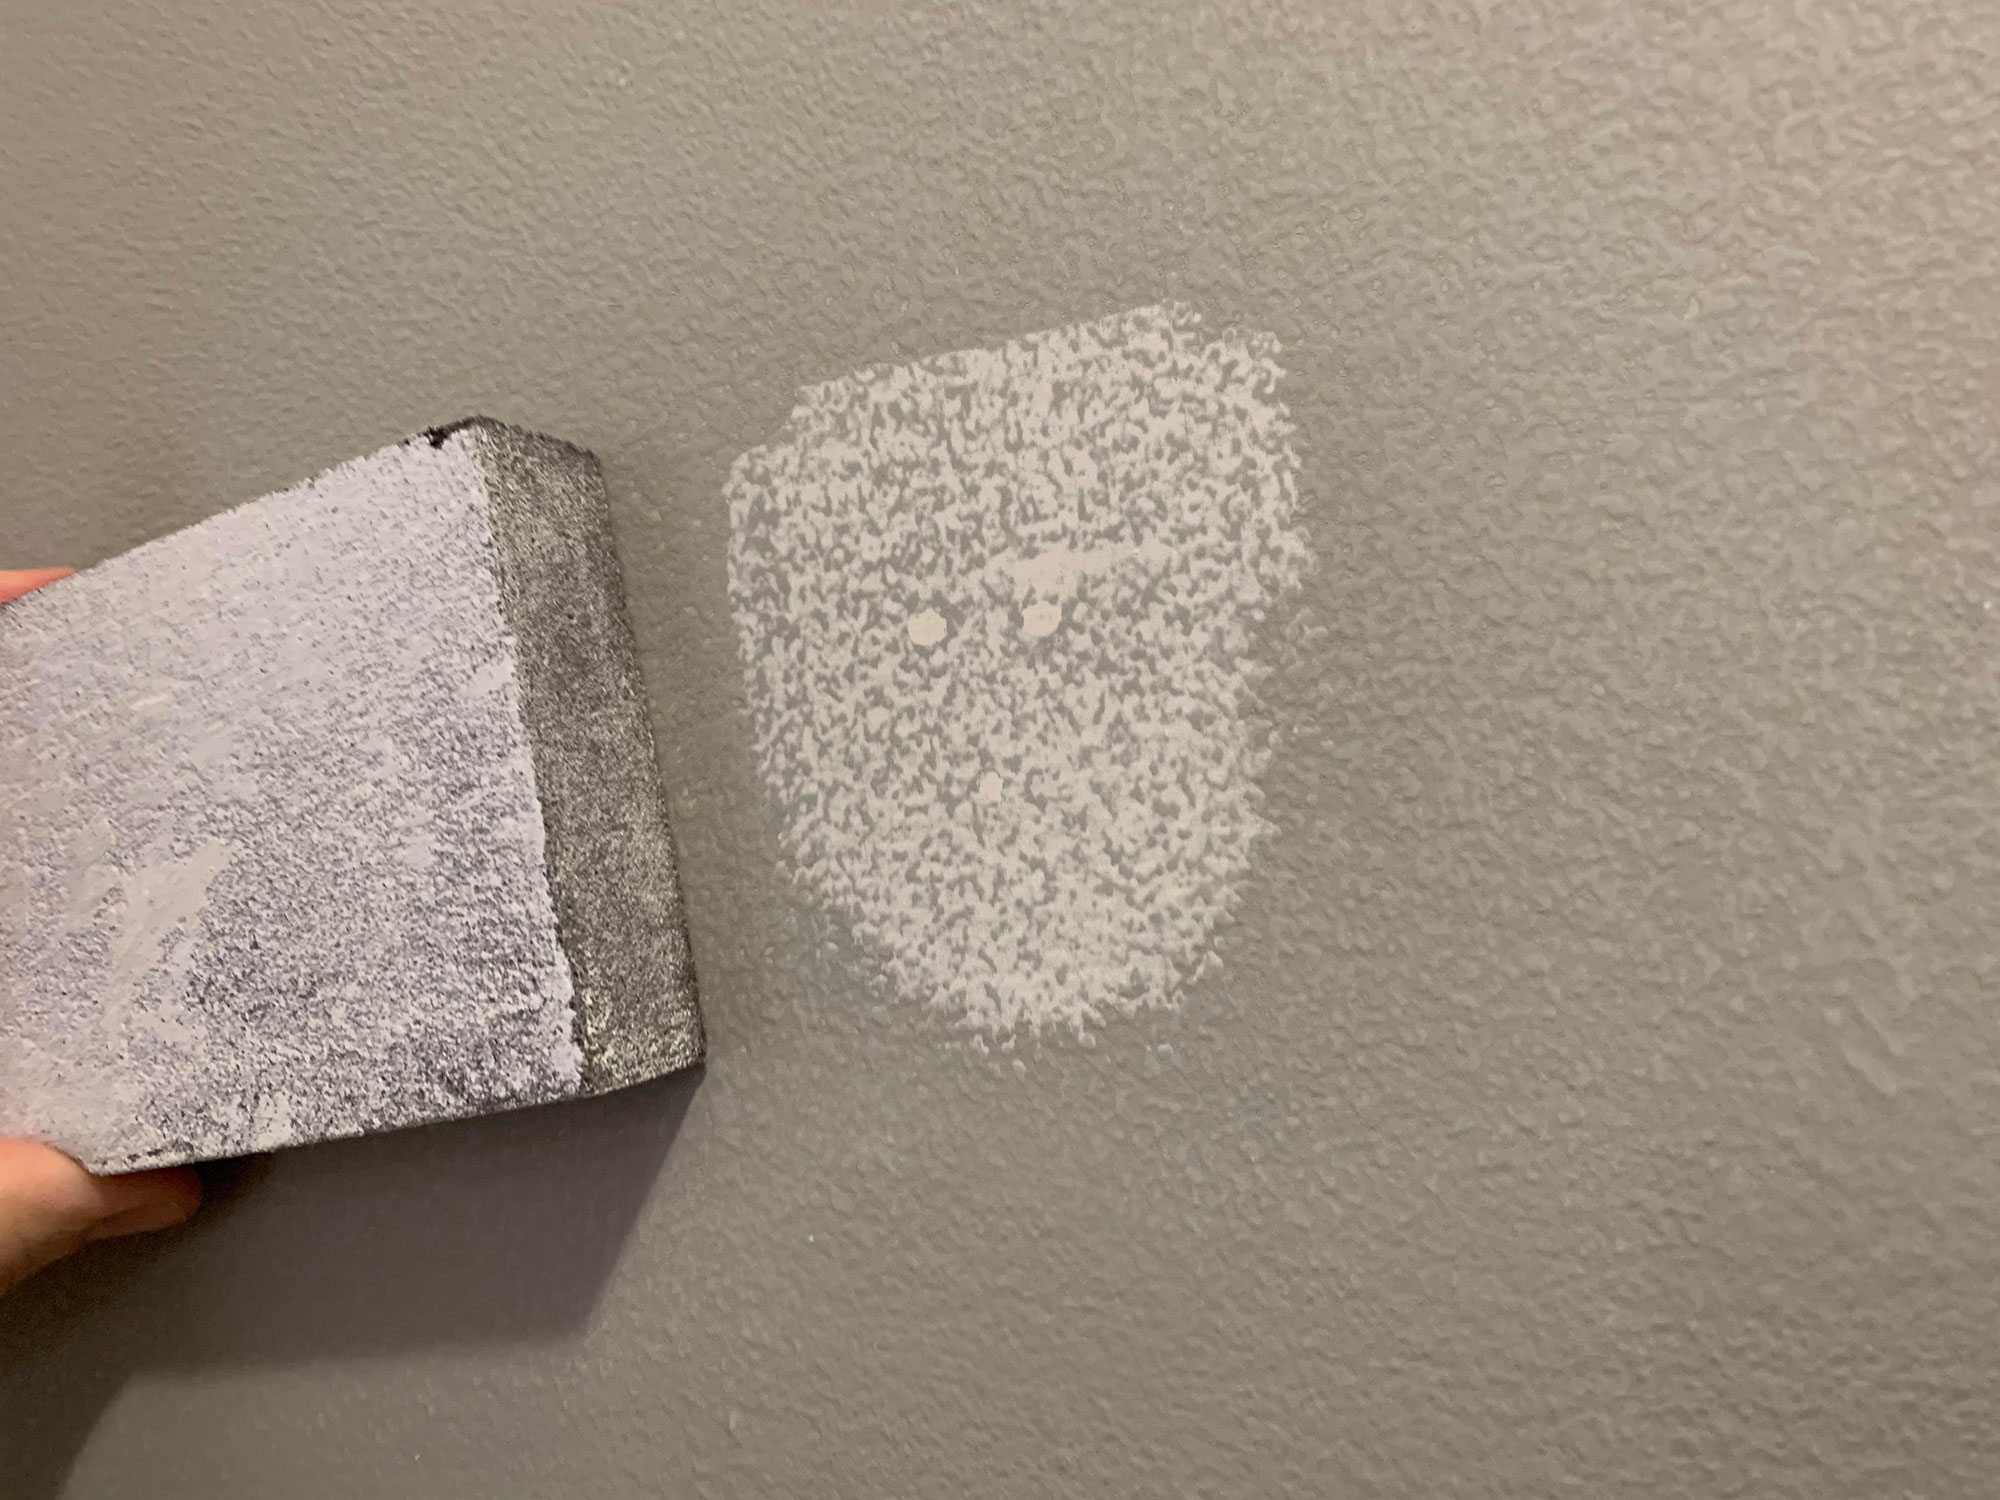 filled holes with spackle